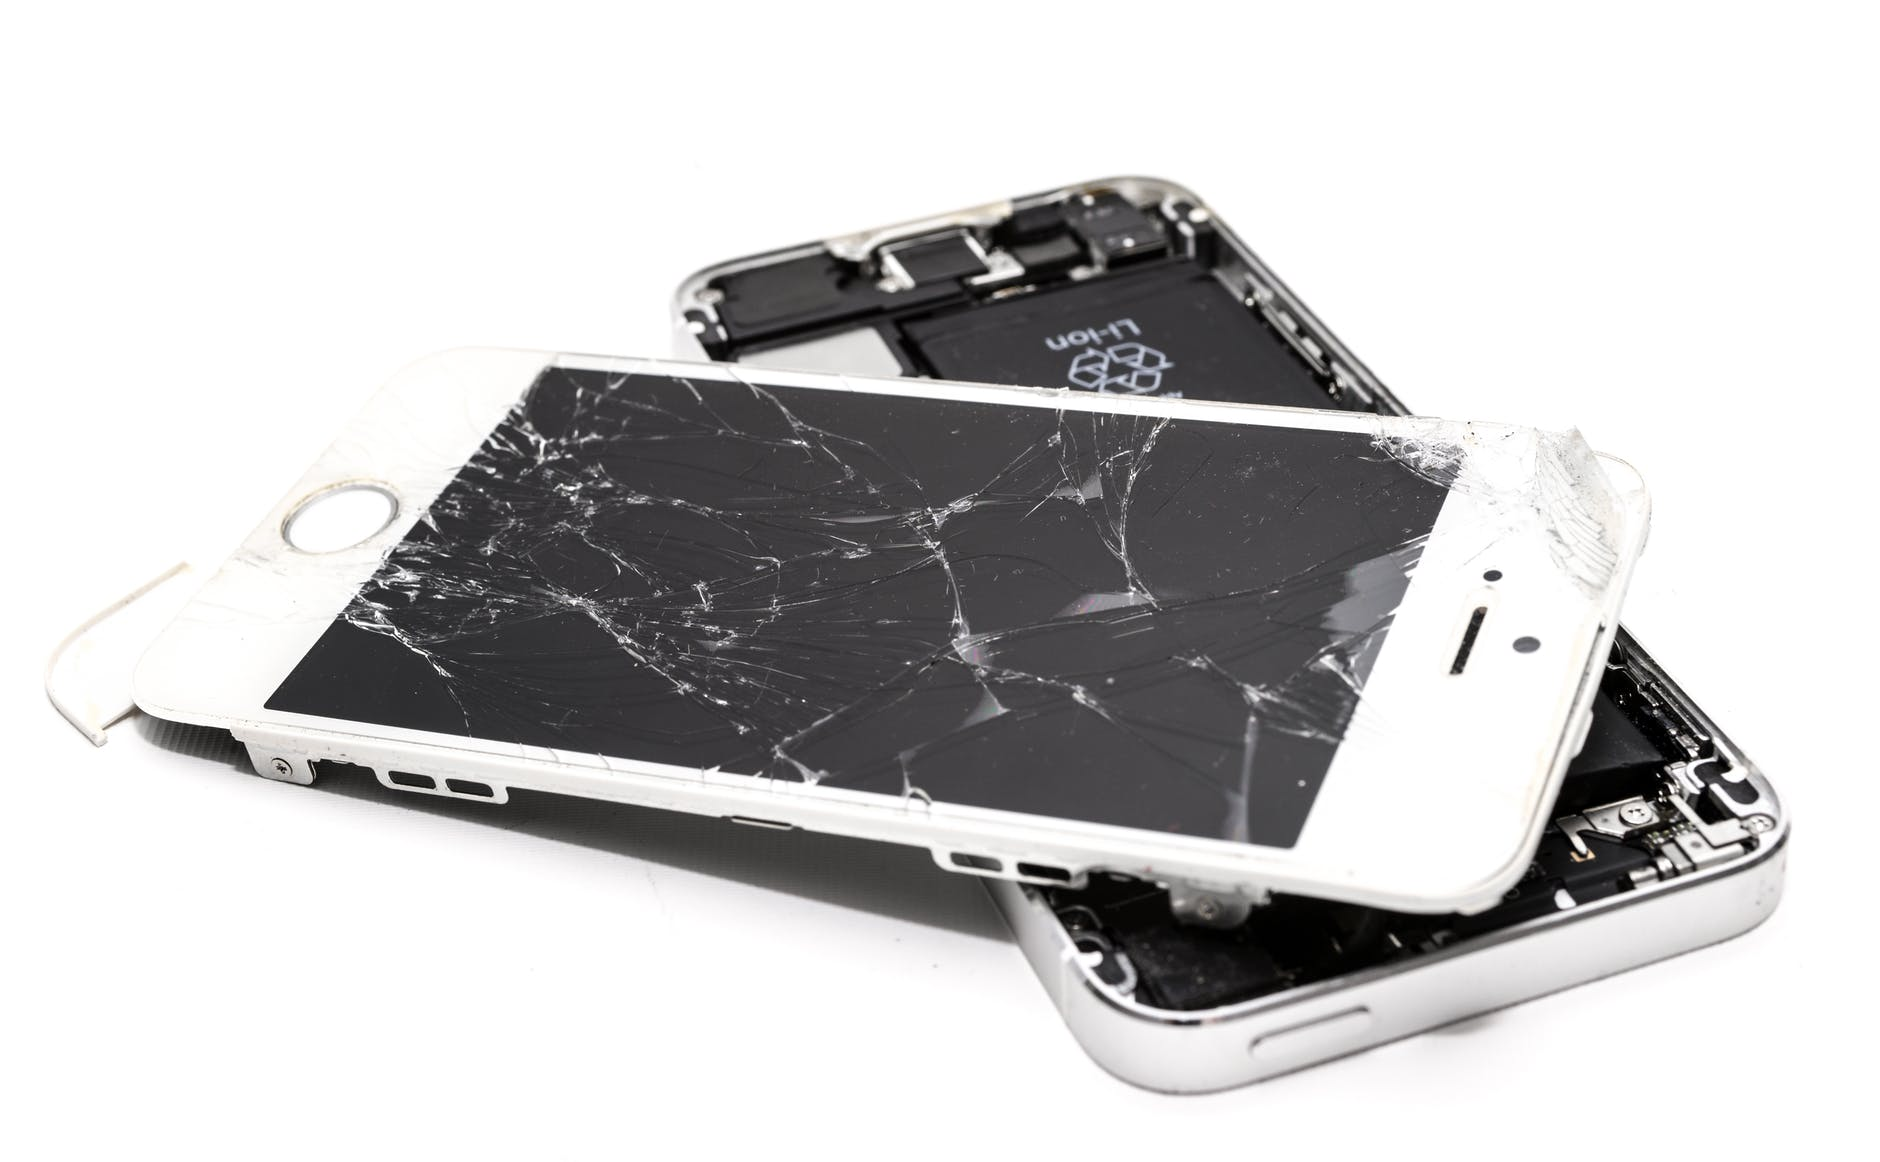 Smartphones with broken glass screen